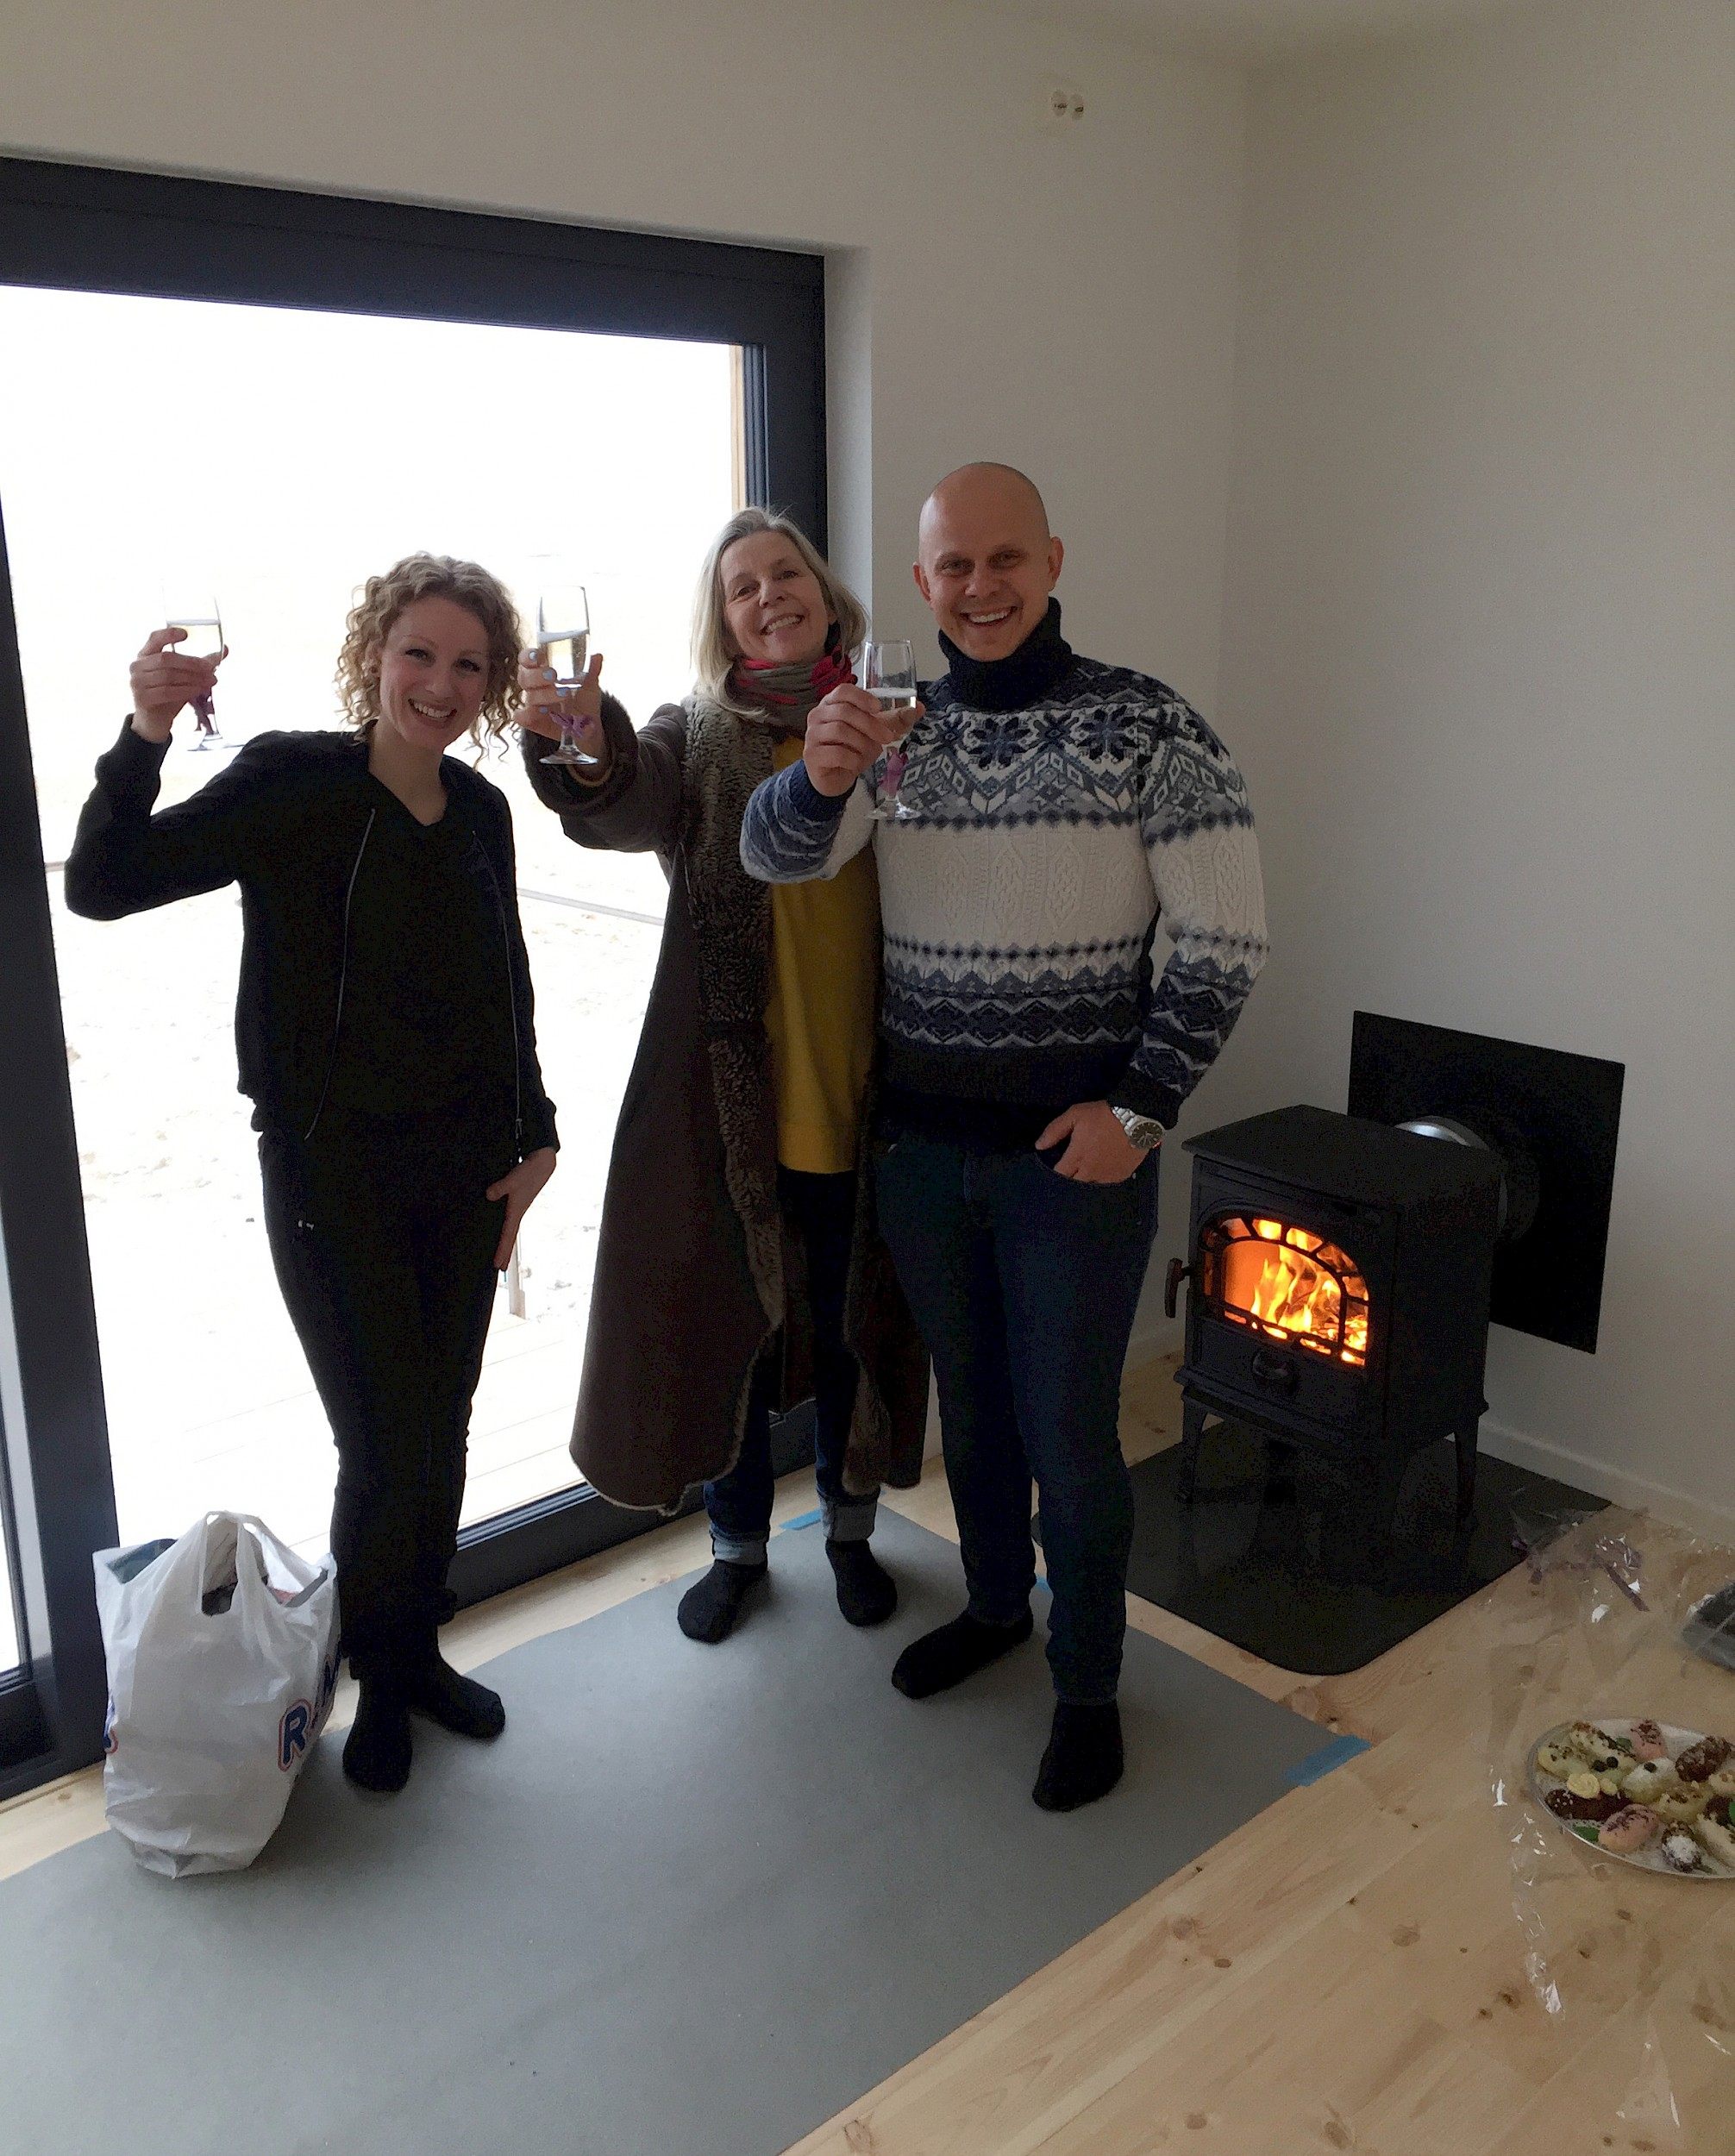 Audhild Dahlstrøm, A K Dolven and Andrius from TMS Bygg celebrate the handover of the MJF building